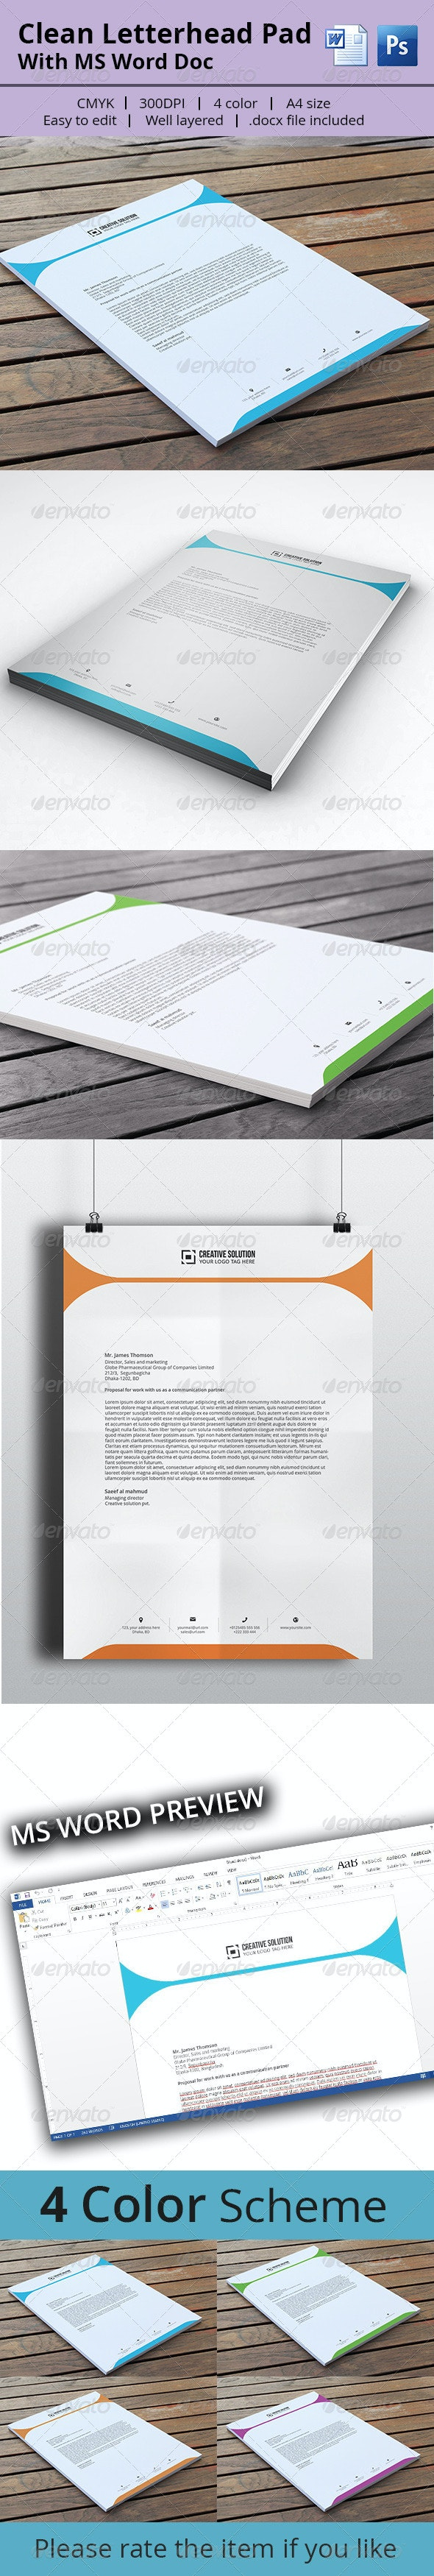 Letterhead Pad With MS Word - Stationery Print Templates